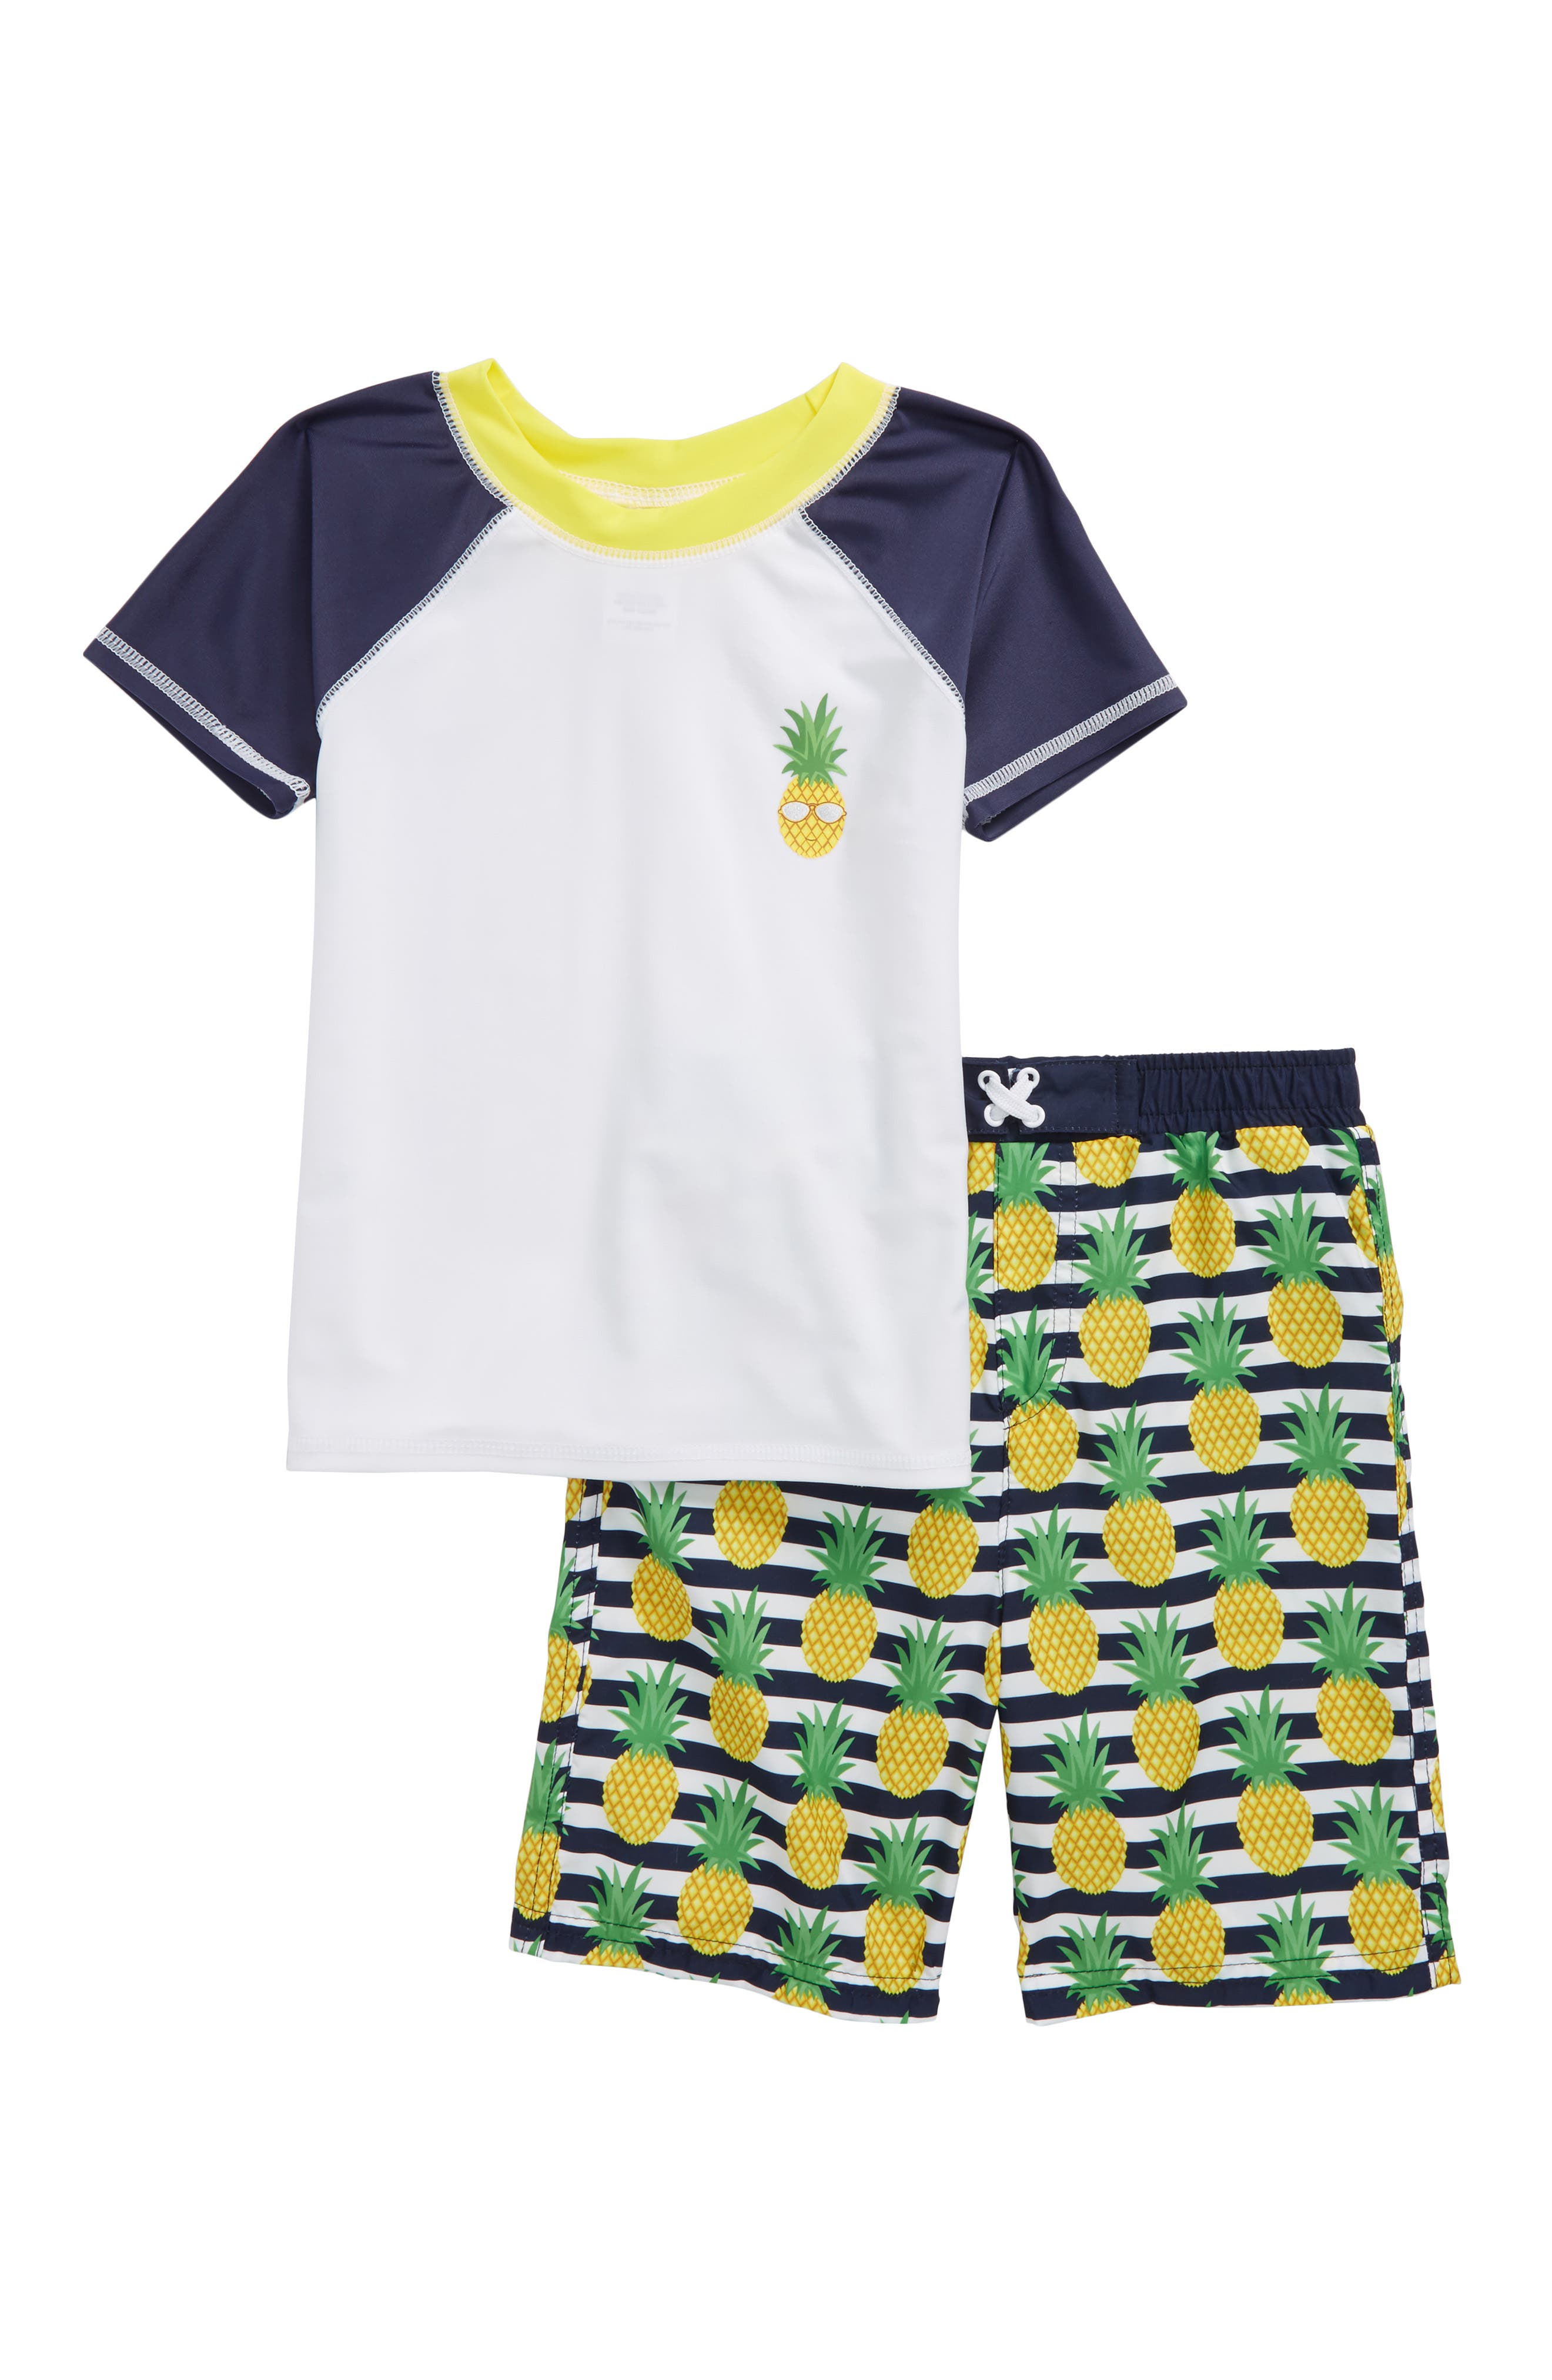 Alternate Image 1 Selected - Sol Swim Two-Piece Rashguard Swimsuit (Toddler Boys & Little Boys)